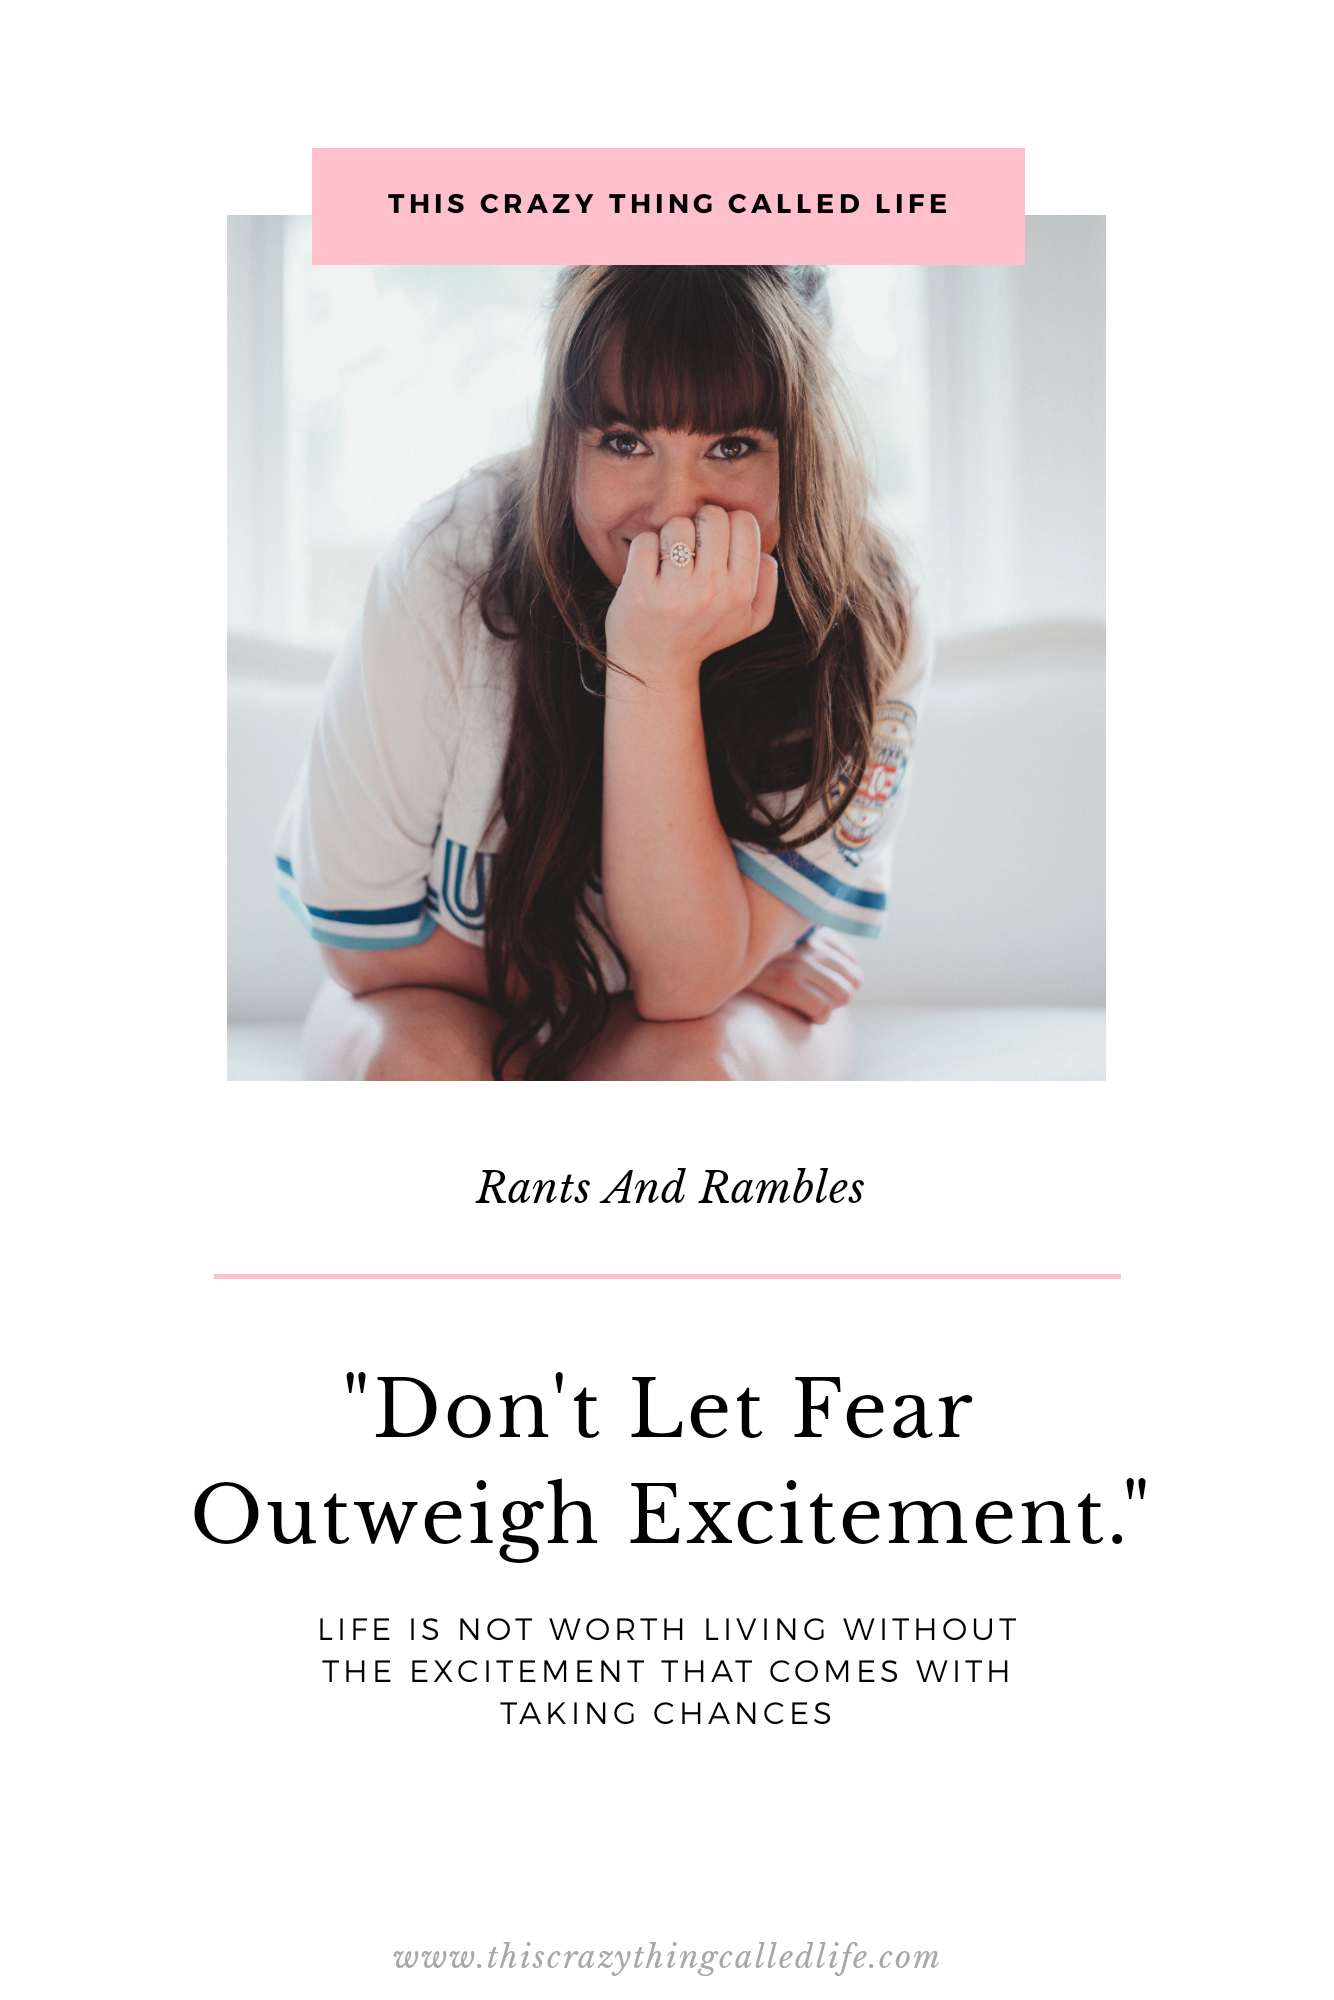 Don't Let The Fear Outweigh The Excitement